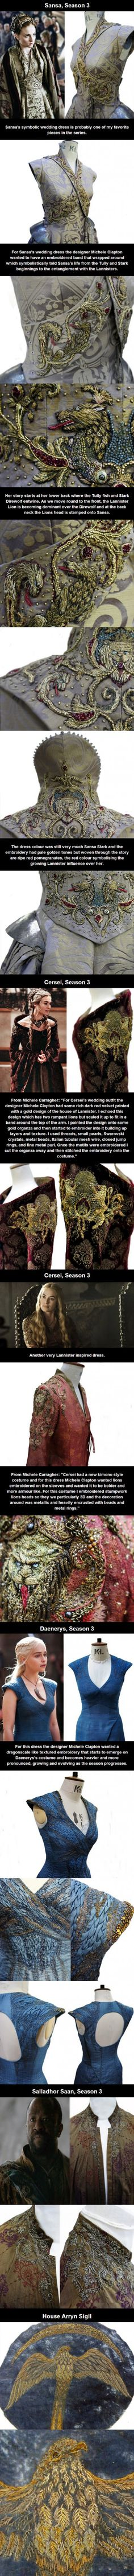 Stunning Game of Thrones Costume Embroidery by Michele Carragher